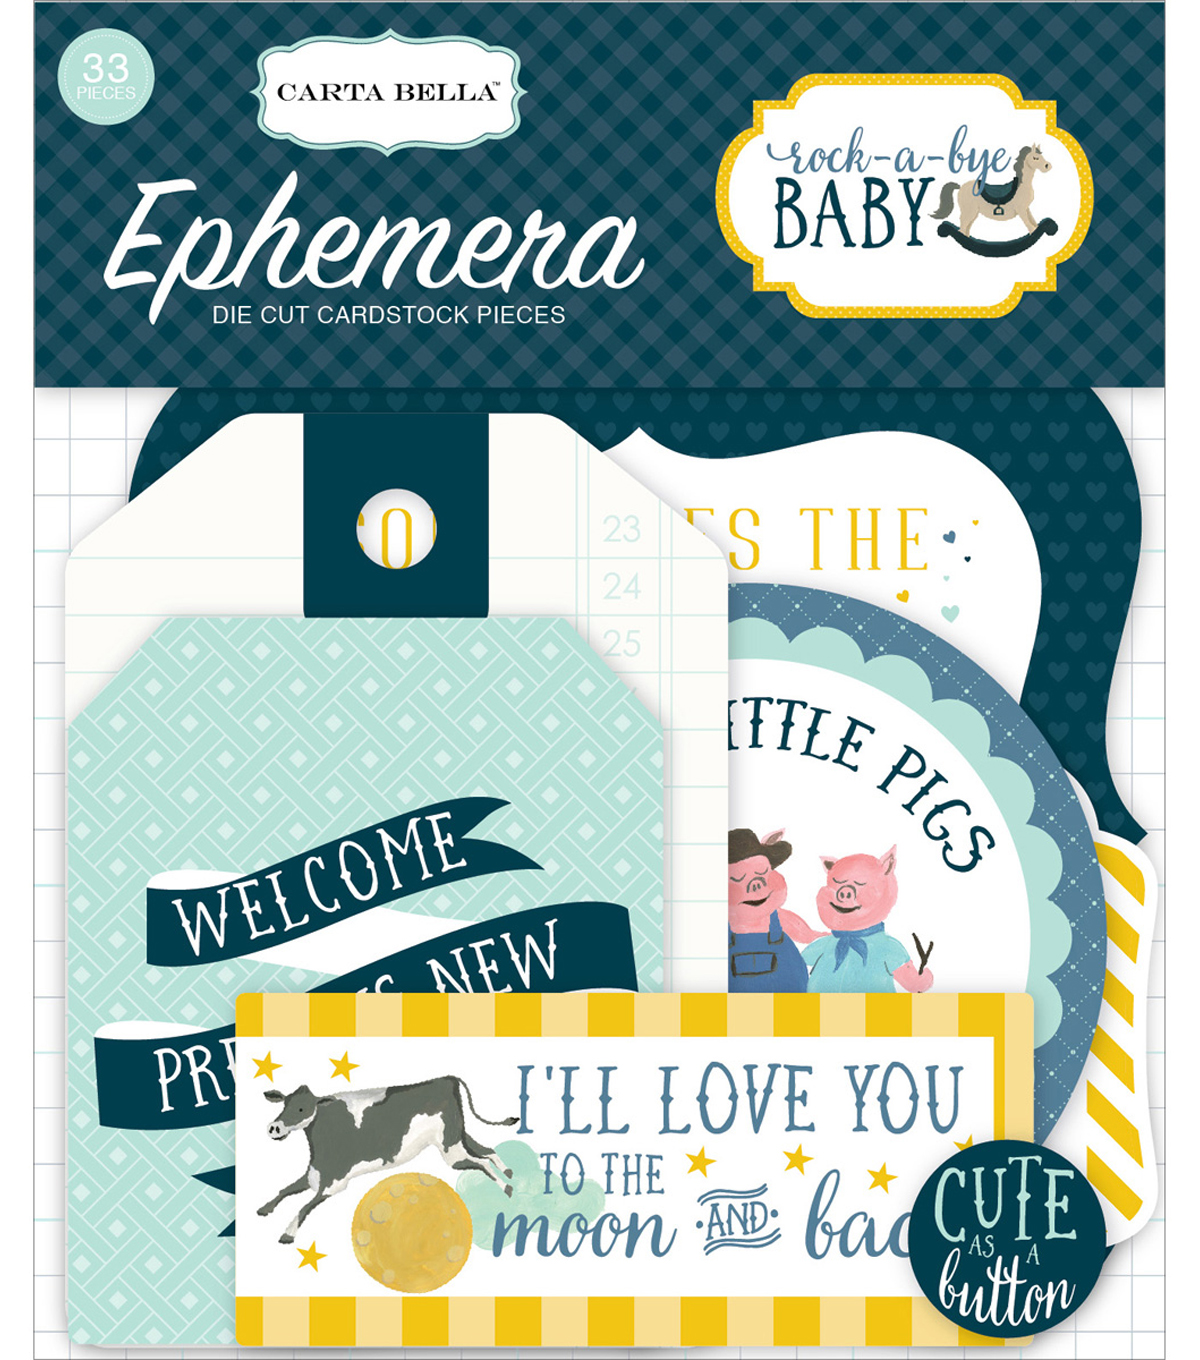 Carta Bella Ephemera Cardstock Die Cut Pieces-Rock A Bye Baby Boy